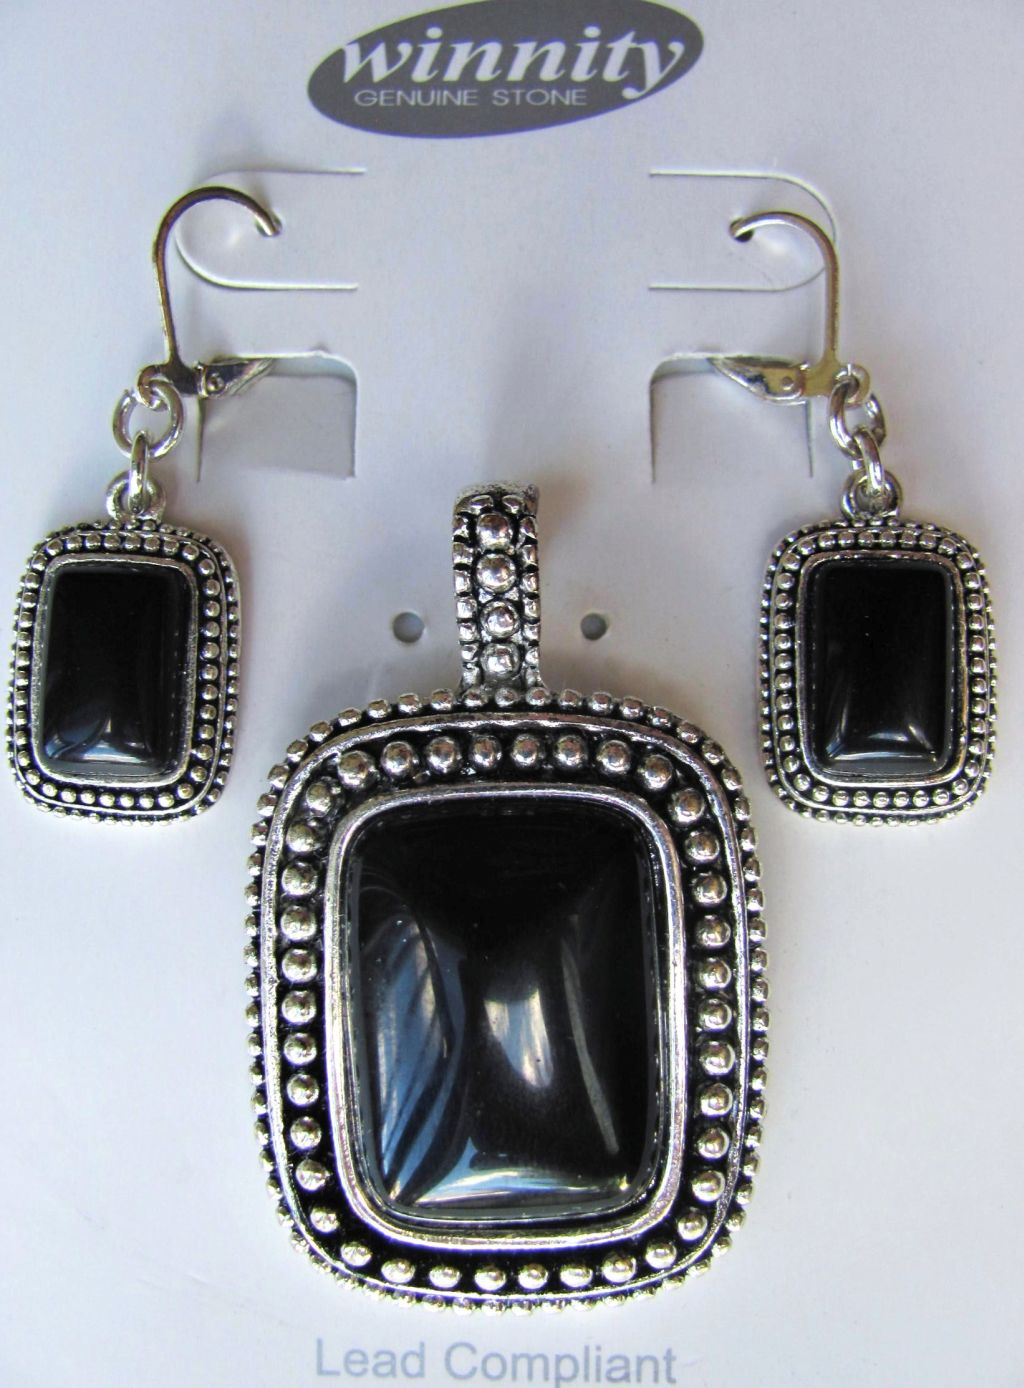 Black Onyx Vintage Rectangle Pendant Earrings Set, Genuine Stone